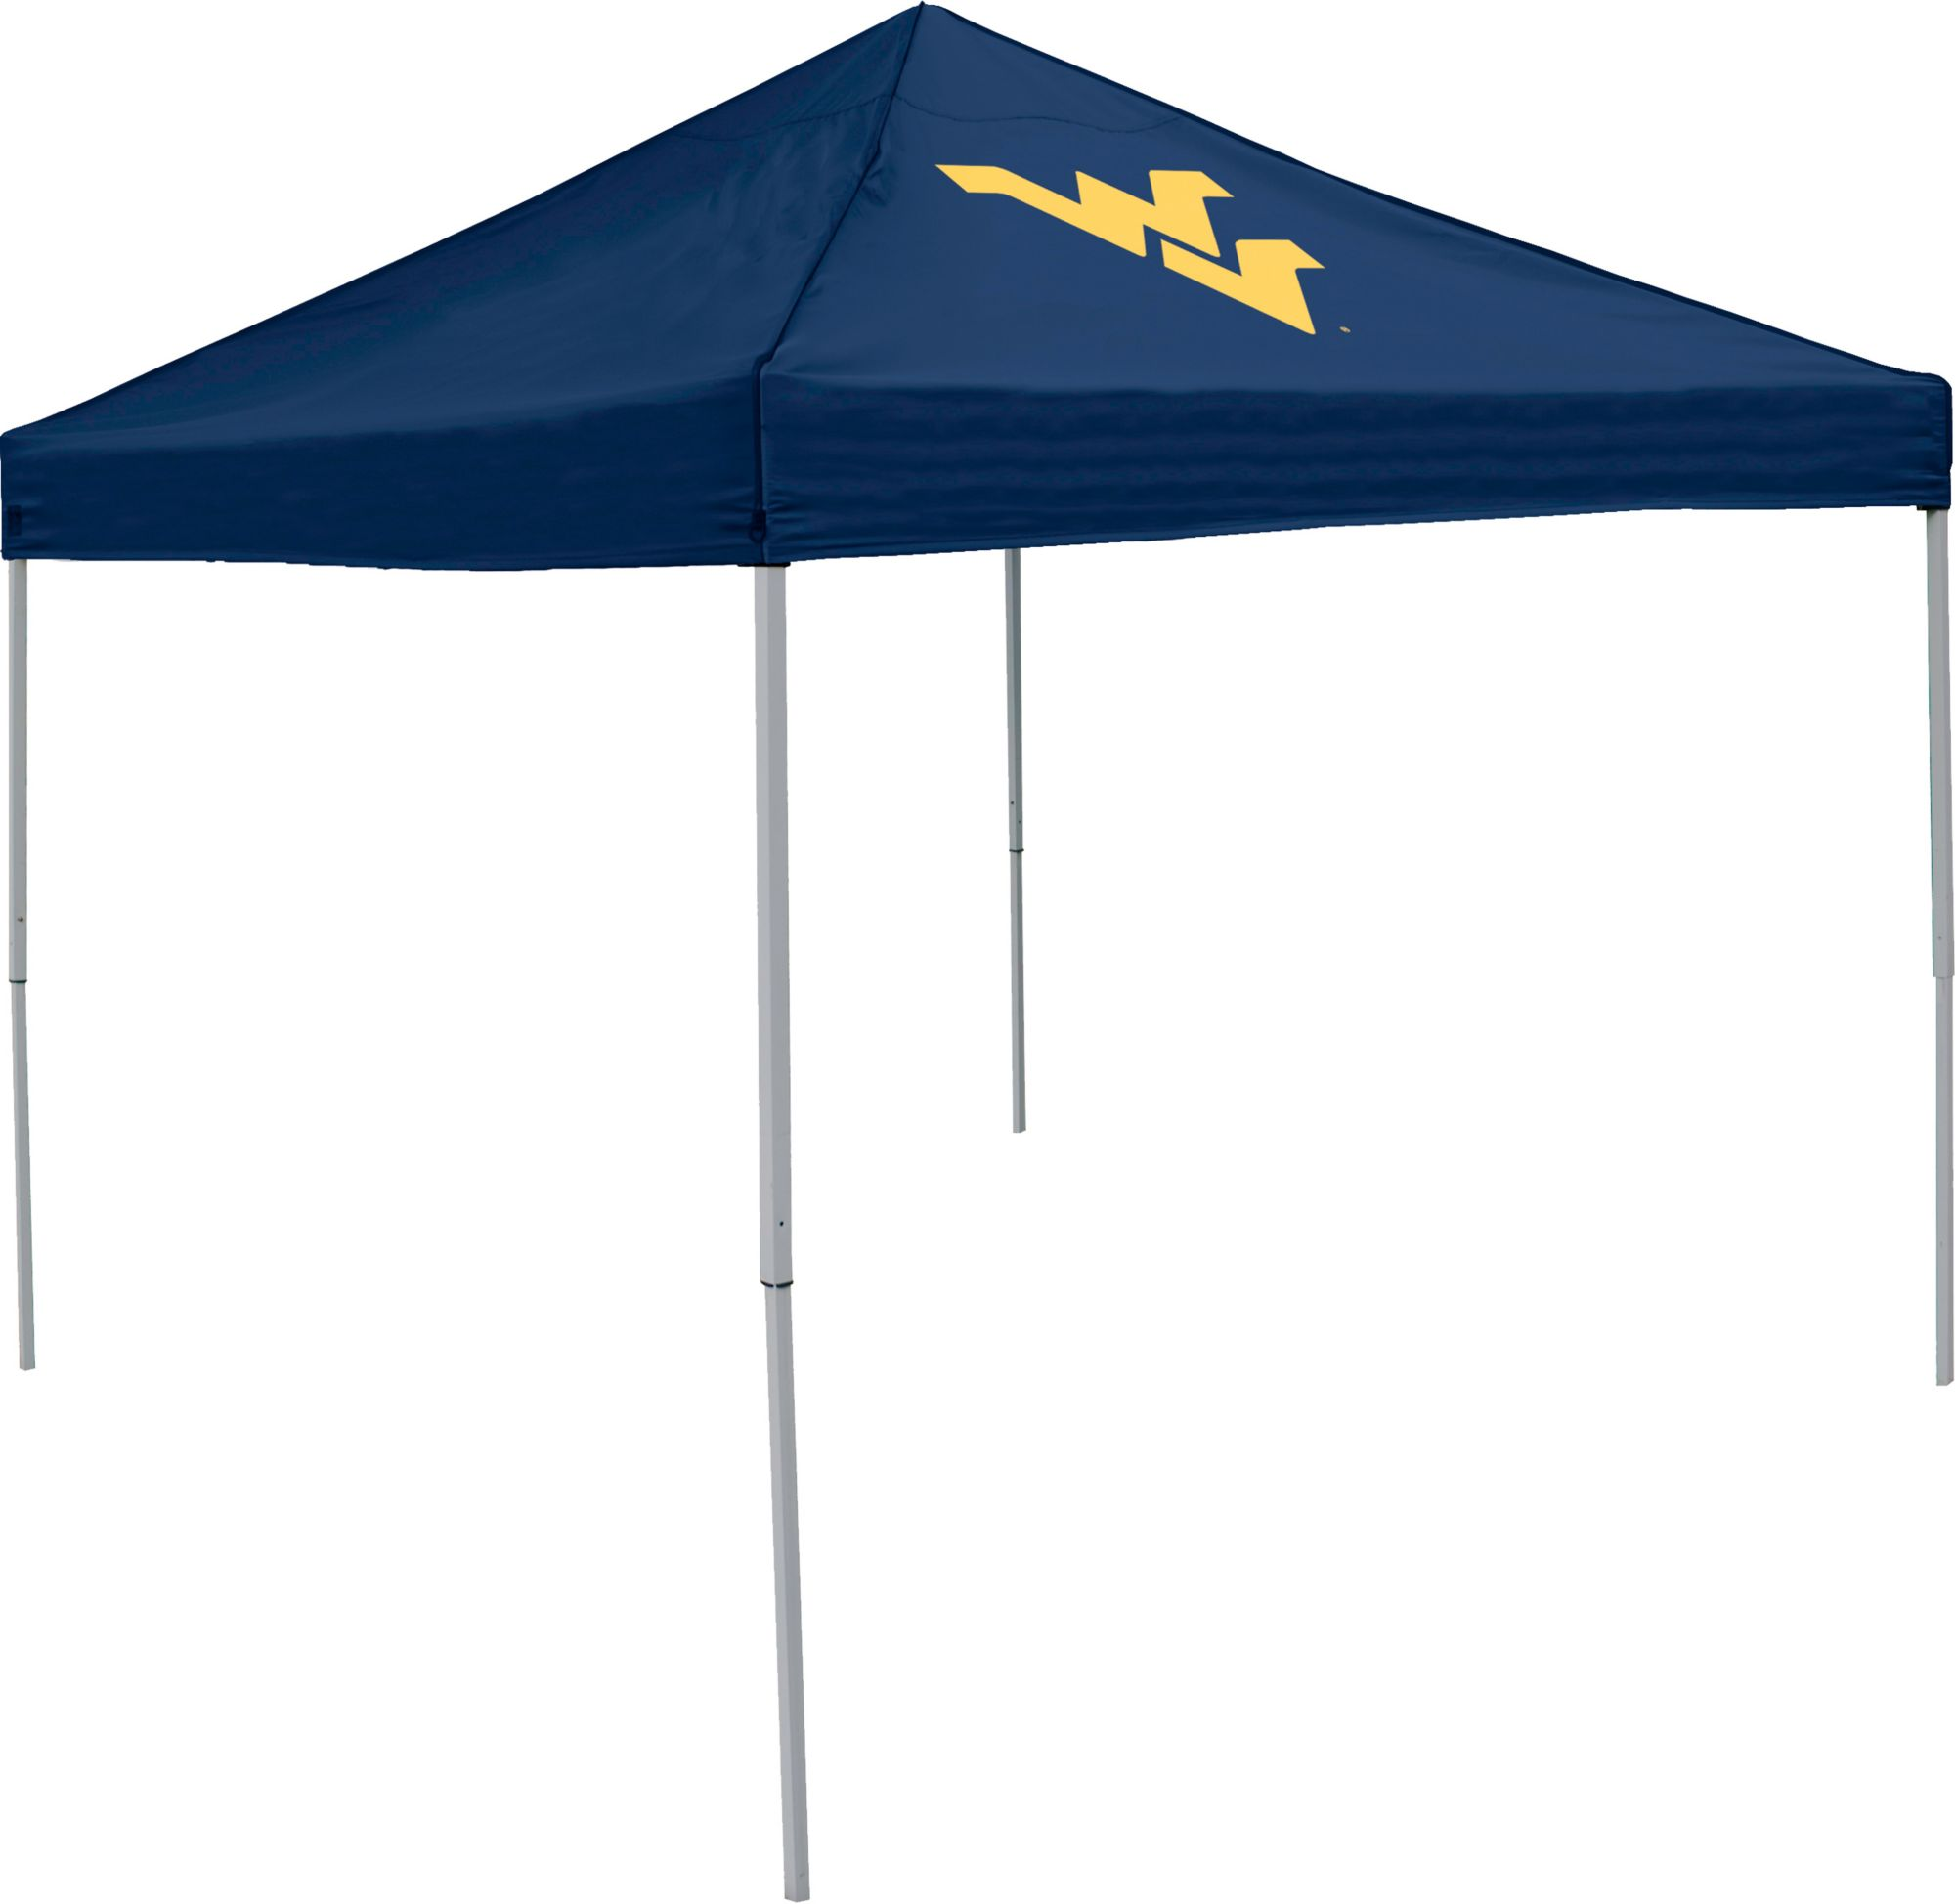 WVU Mountaineers Pop Up Tent  sc 1 st  DICKu0027S Sporting Goods & WVU Mountaineers Pop Up Tent | DICKu0027S Sporting Goods